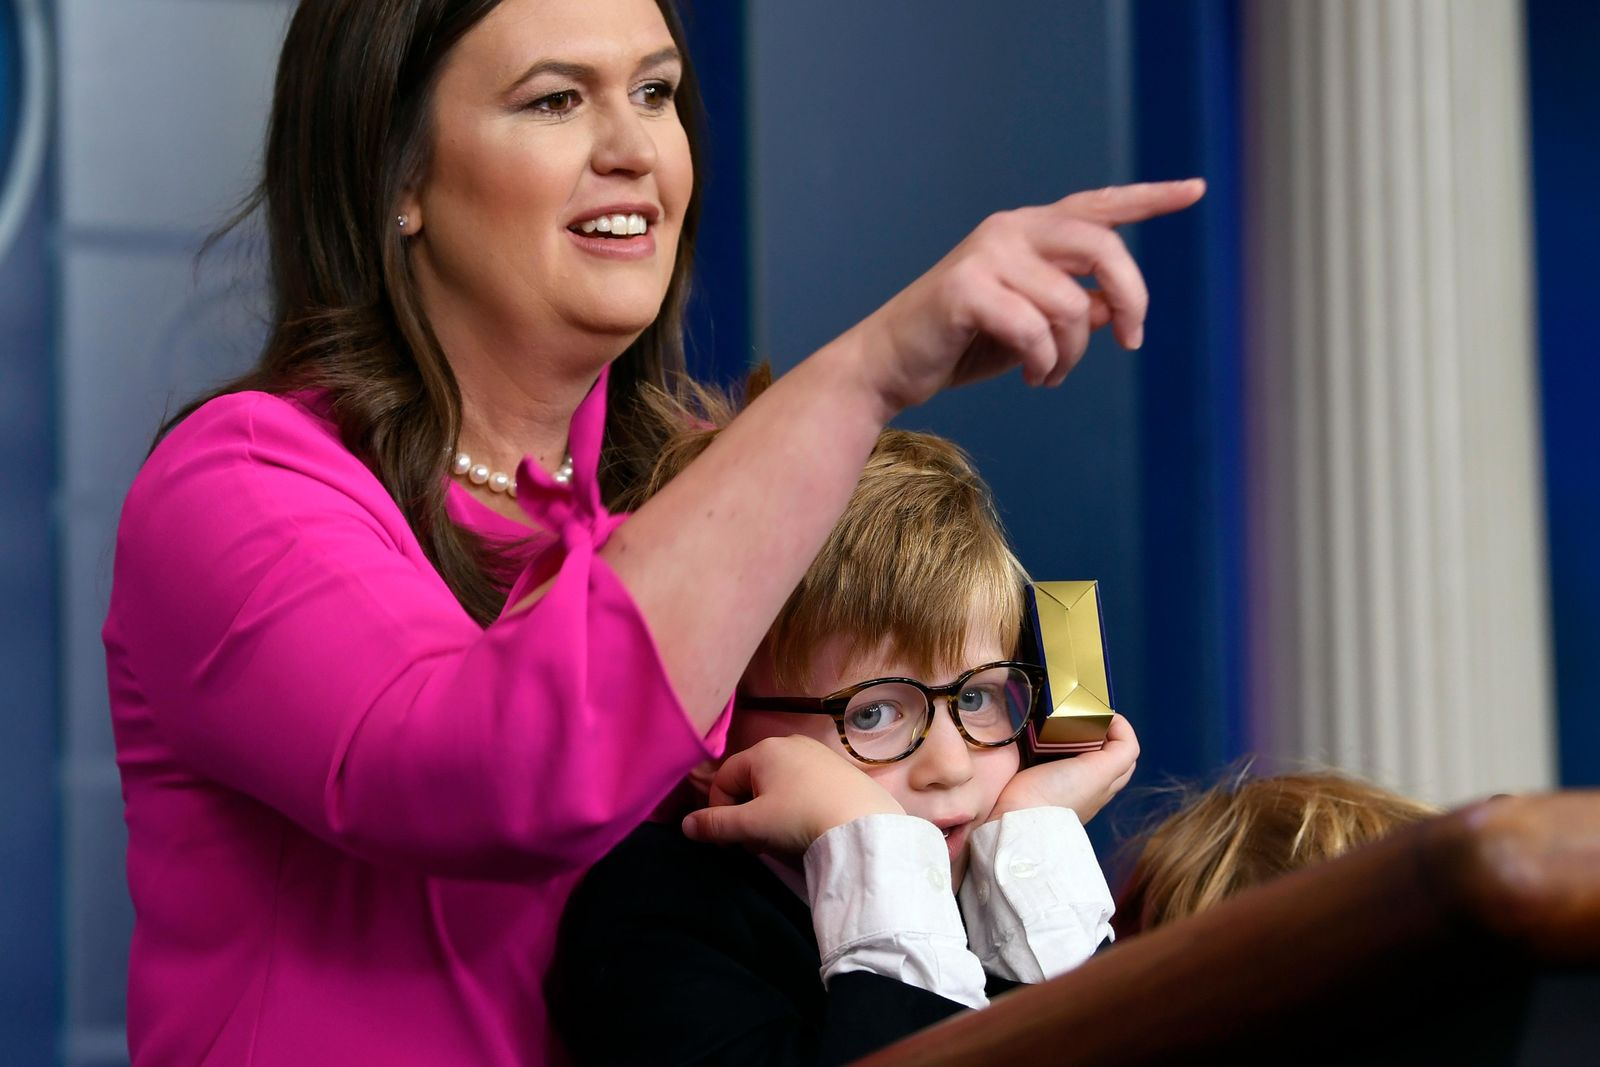 White House press secretary Sarah Sanders, standing next to her son Huck Sanders, calls on a child during a briefing at the White House in Washington, Thursday, April 25, 2019. . (AP Photo/Susan Walsh)